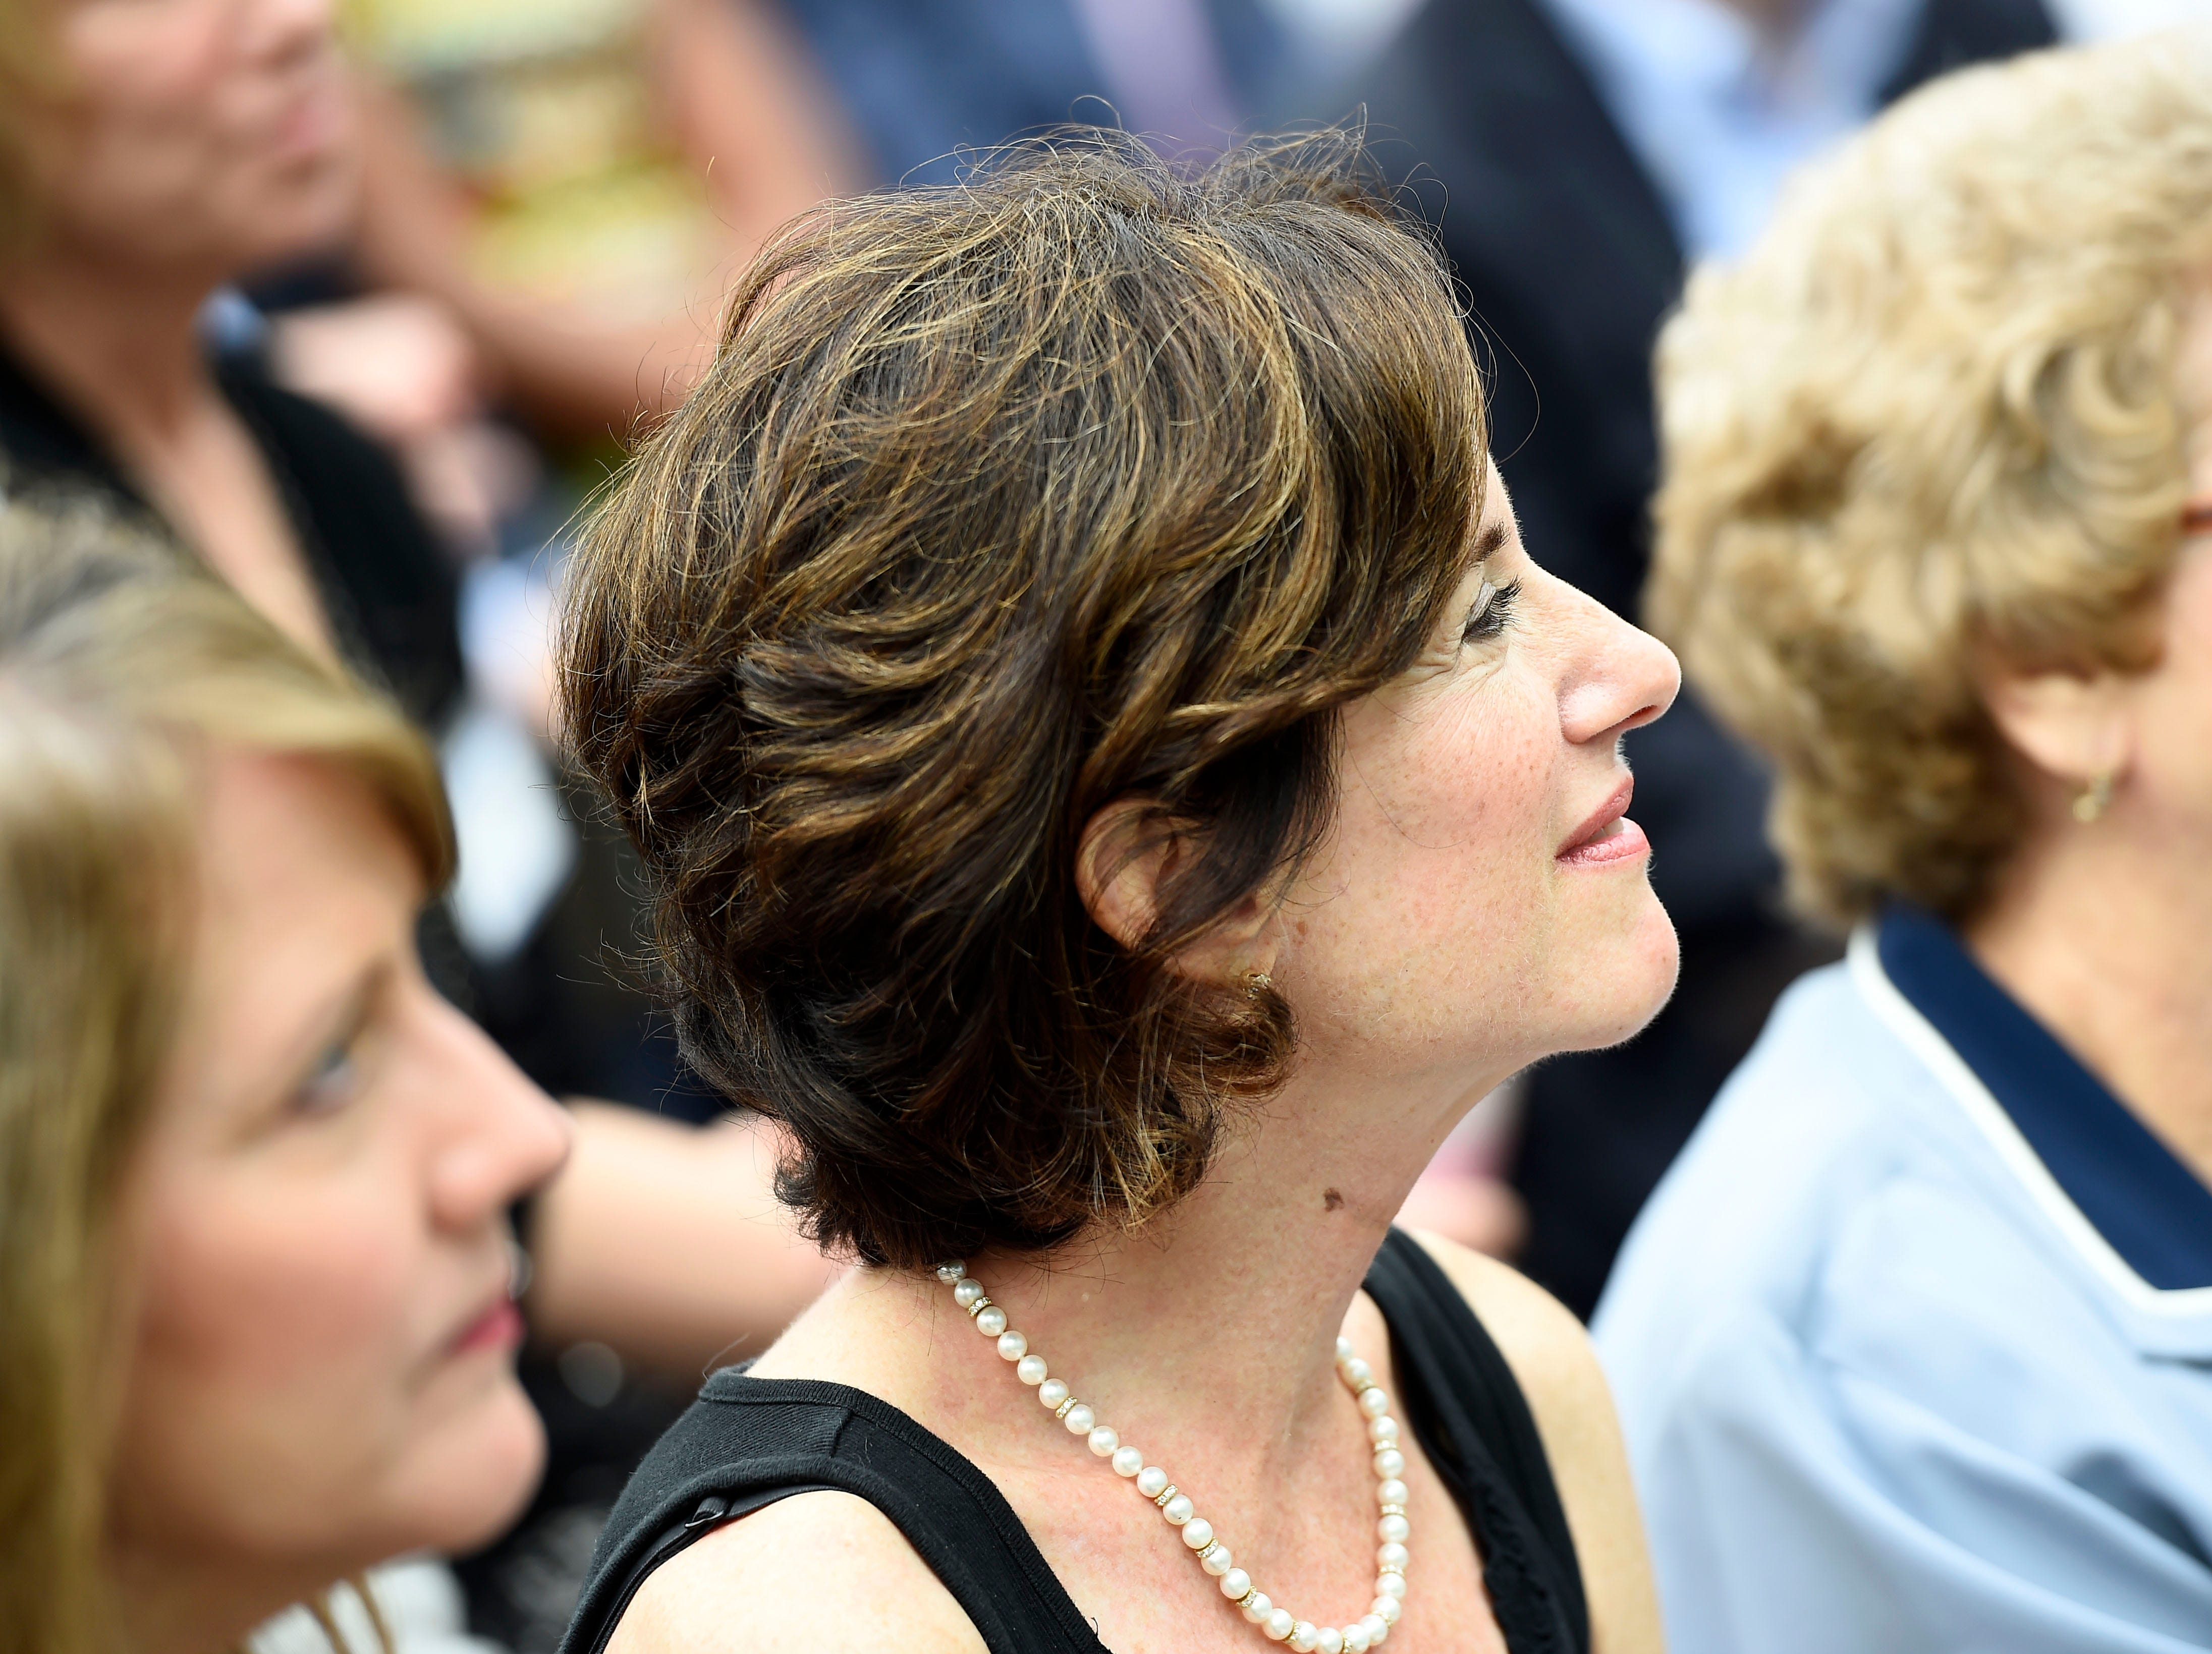 Susan Packard, co-founder and former chief operating officer of HGTV, listens to Kenneth Lowe's remarks as HGTV marks its 20th anniversary outside of the Scripps Networks Interactive headquarters in Knoxville, Tuesday, Sept. 9, 2014.